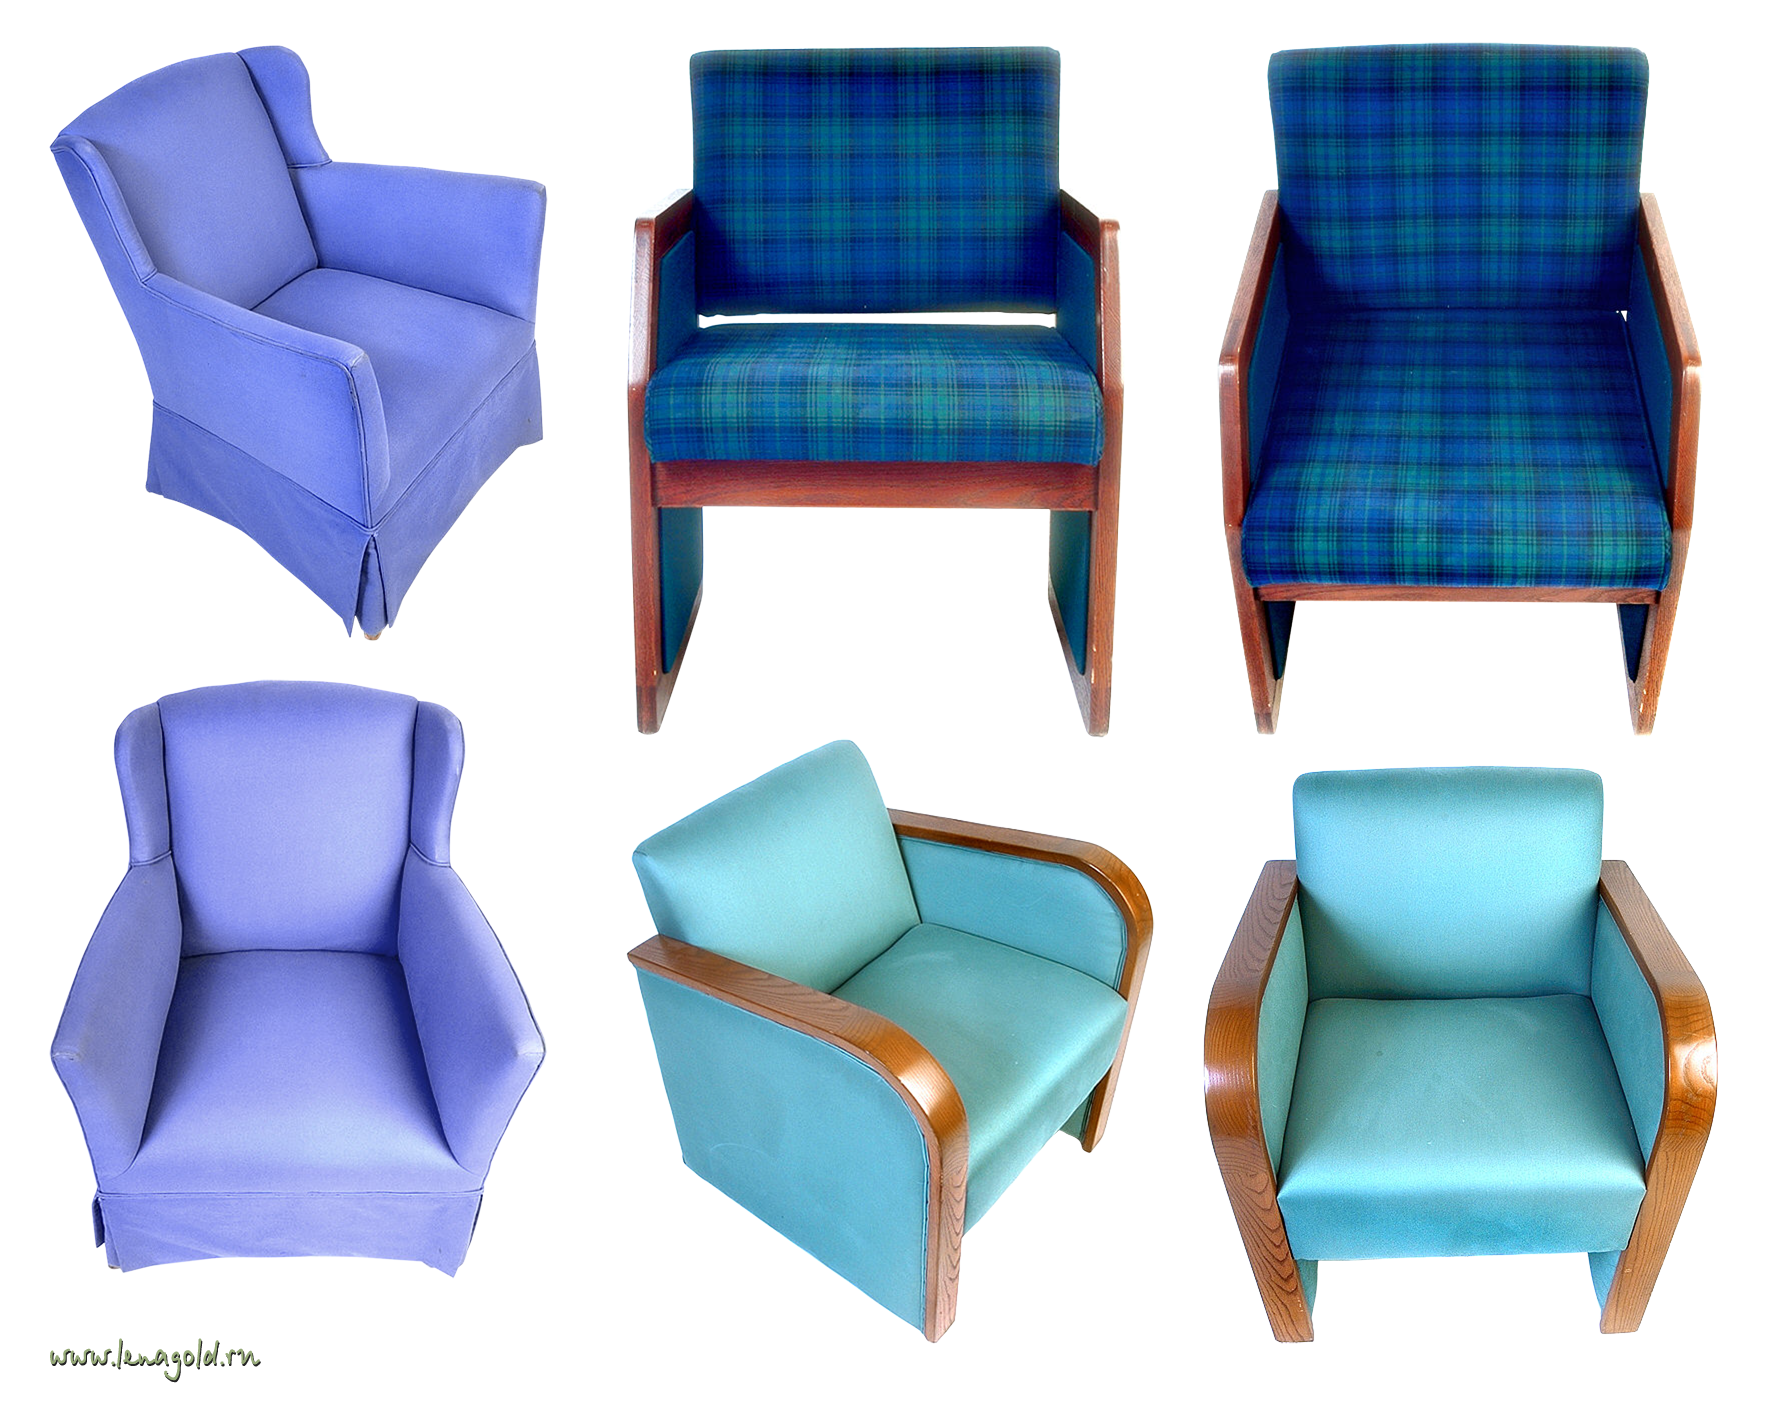 Armchair Png Image Armchair Chair Design Sofa